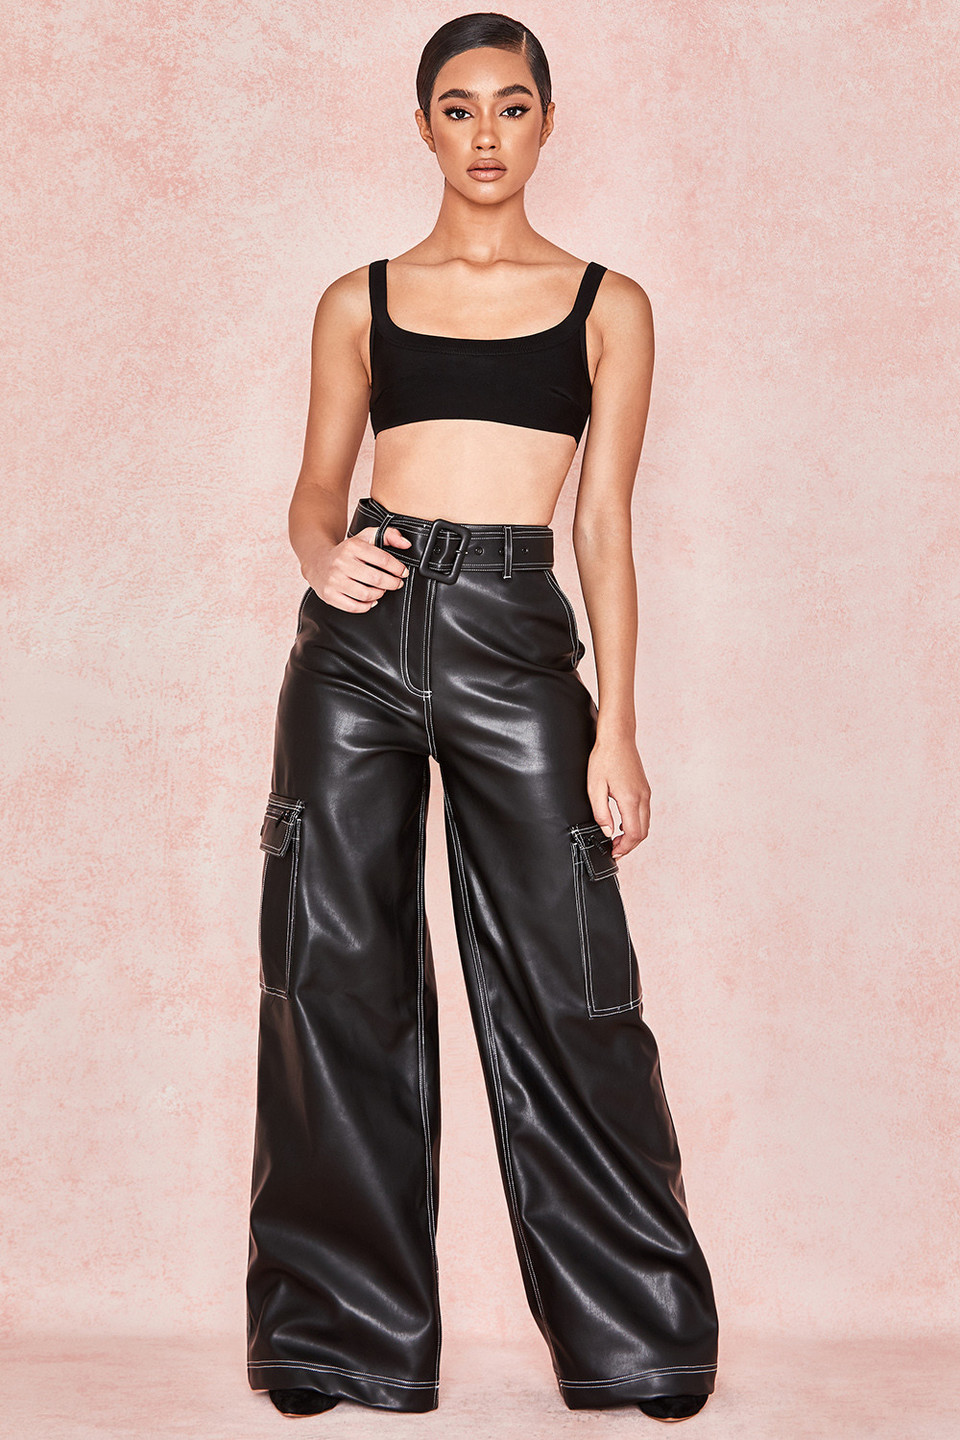 Analaya Black Vegan Leather Wide Leg Trousers